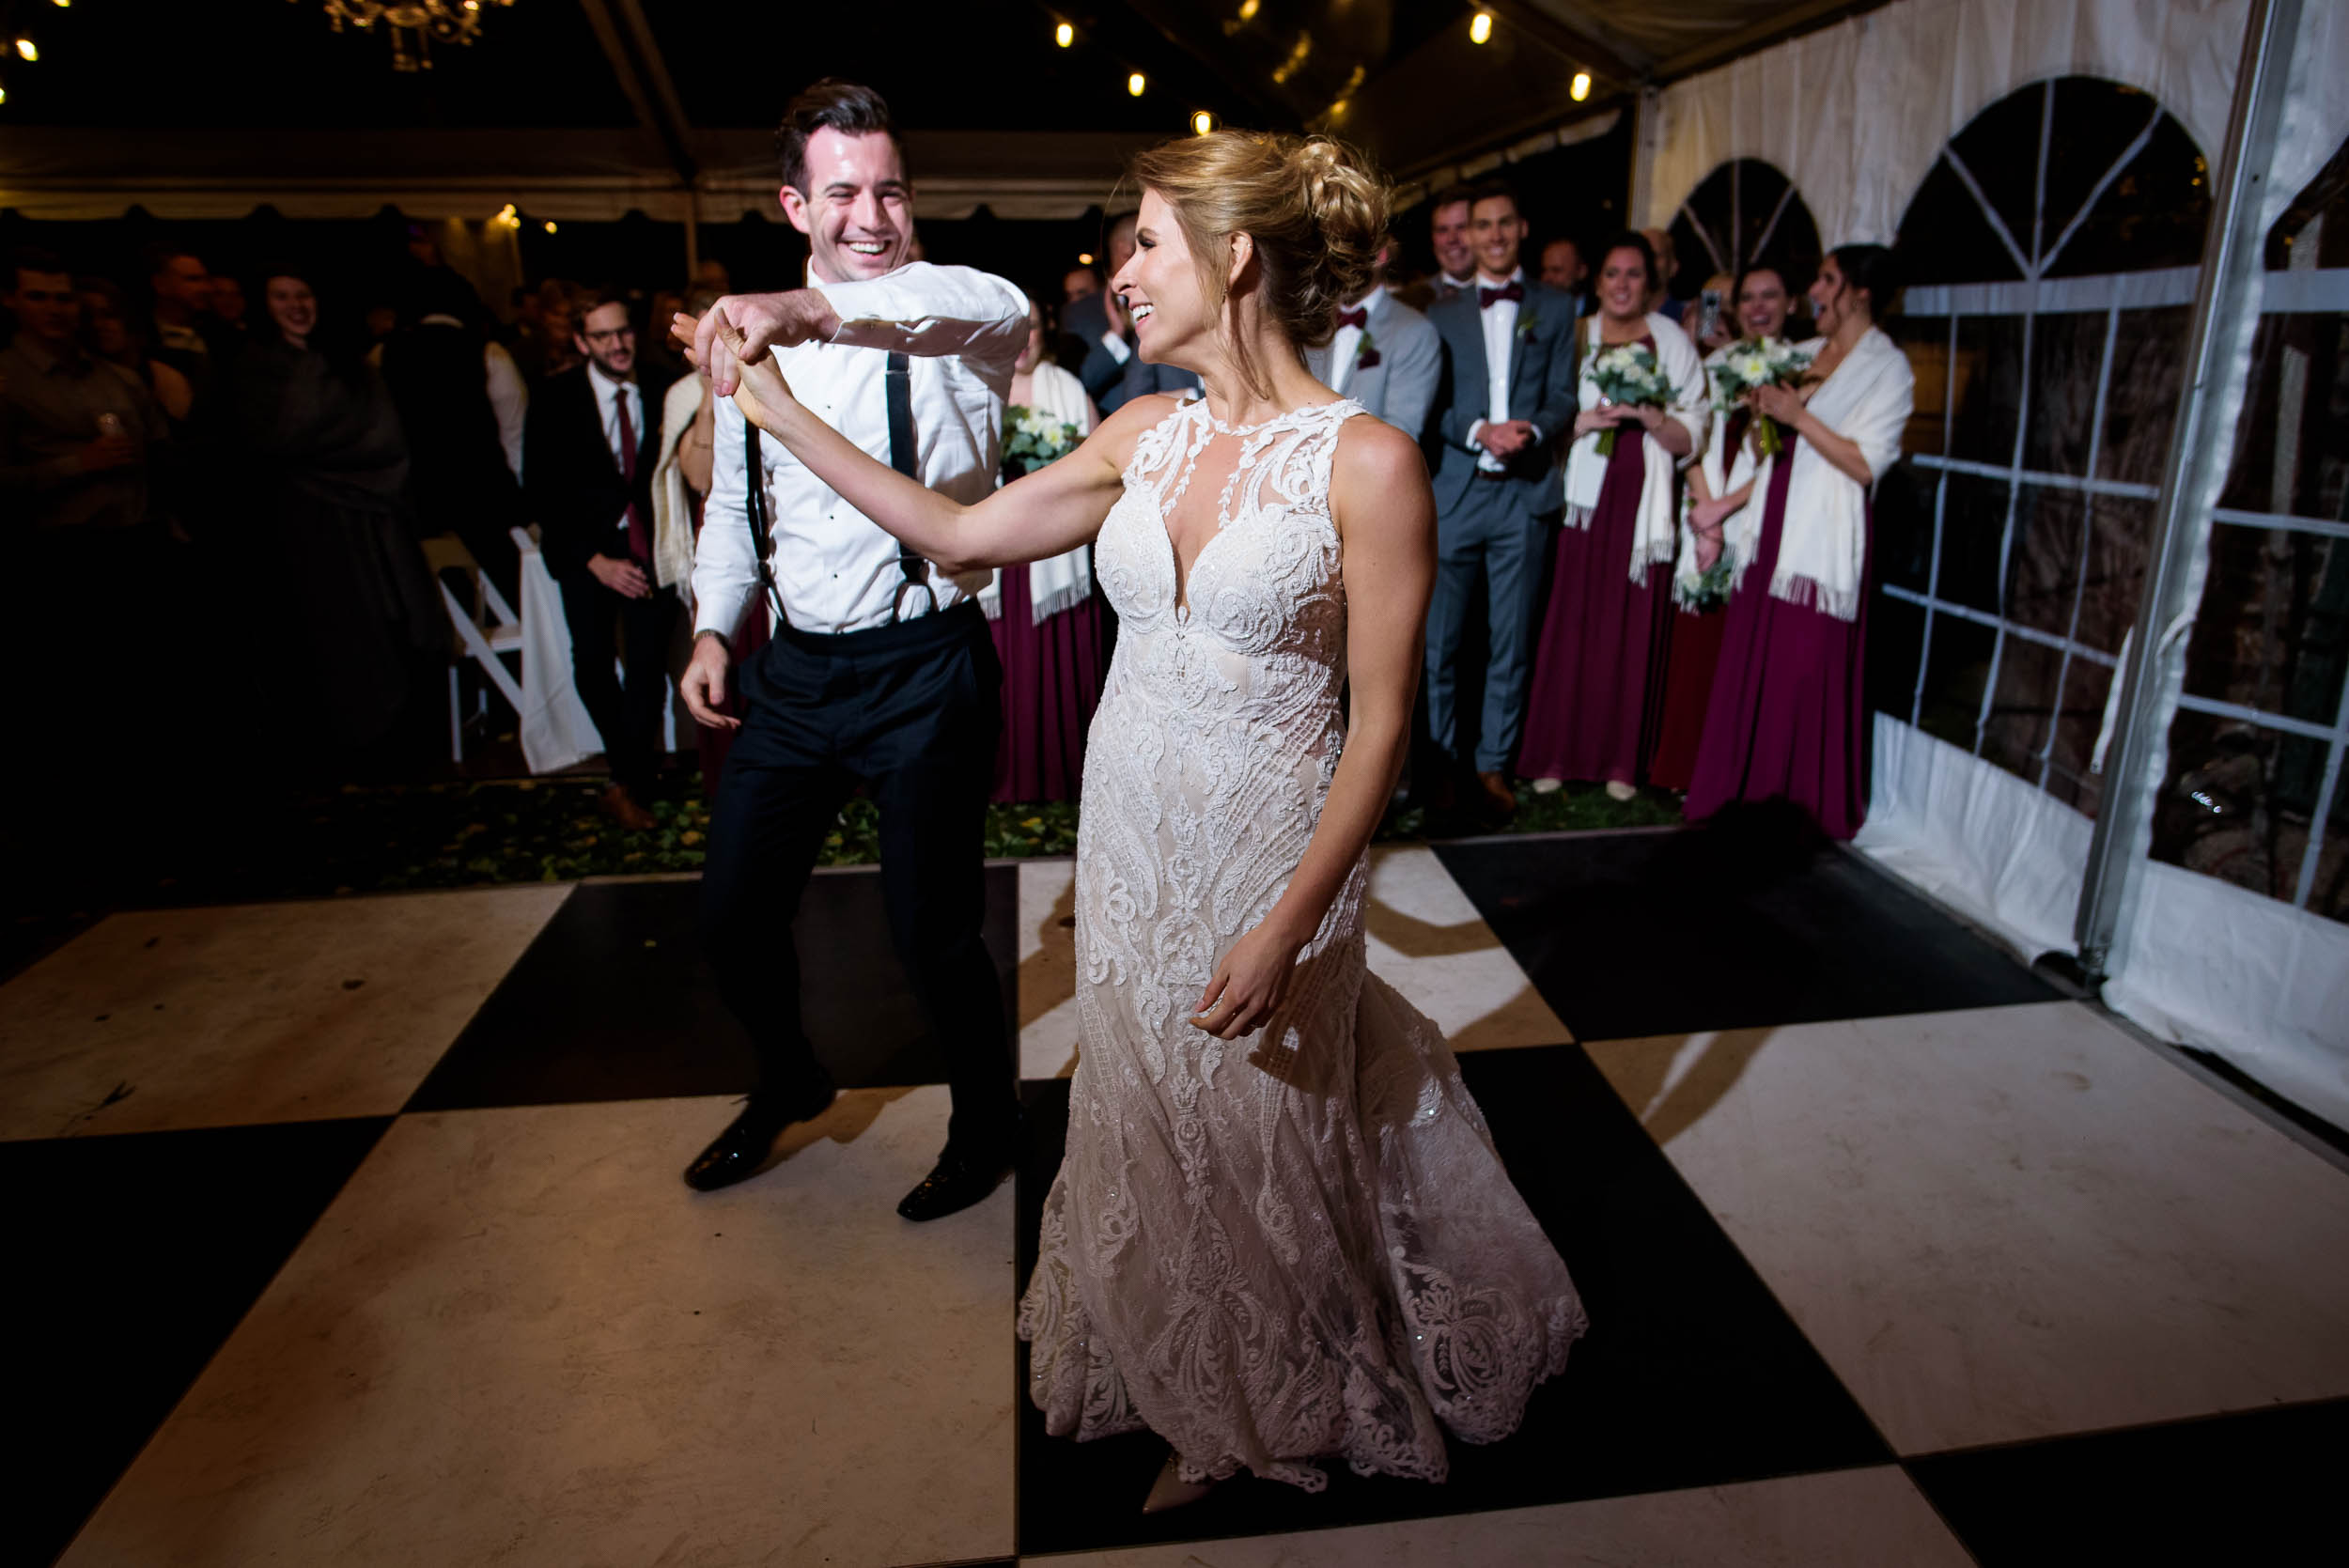 Bride and groom first dance during a Glessner House Chicago wedding.